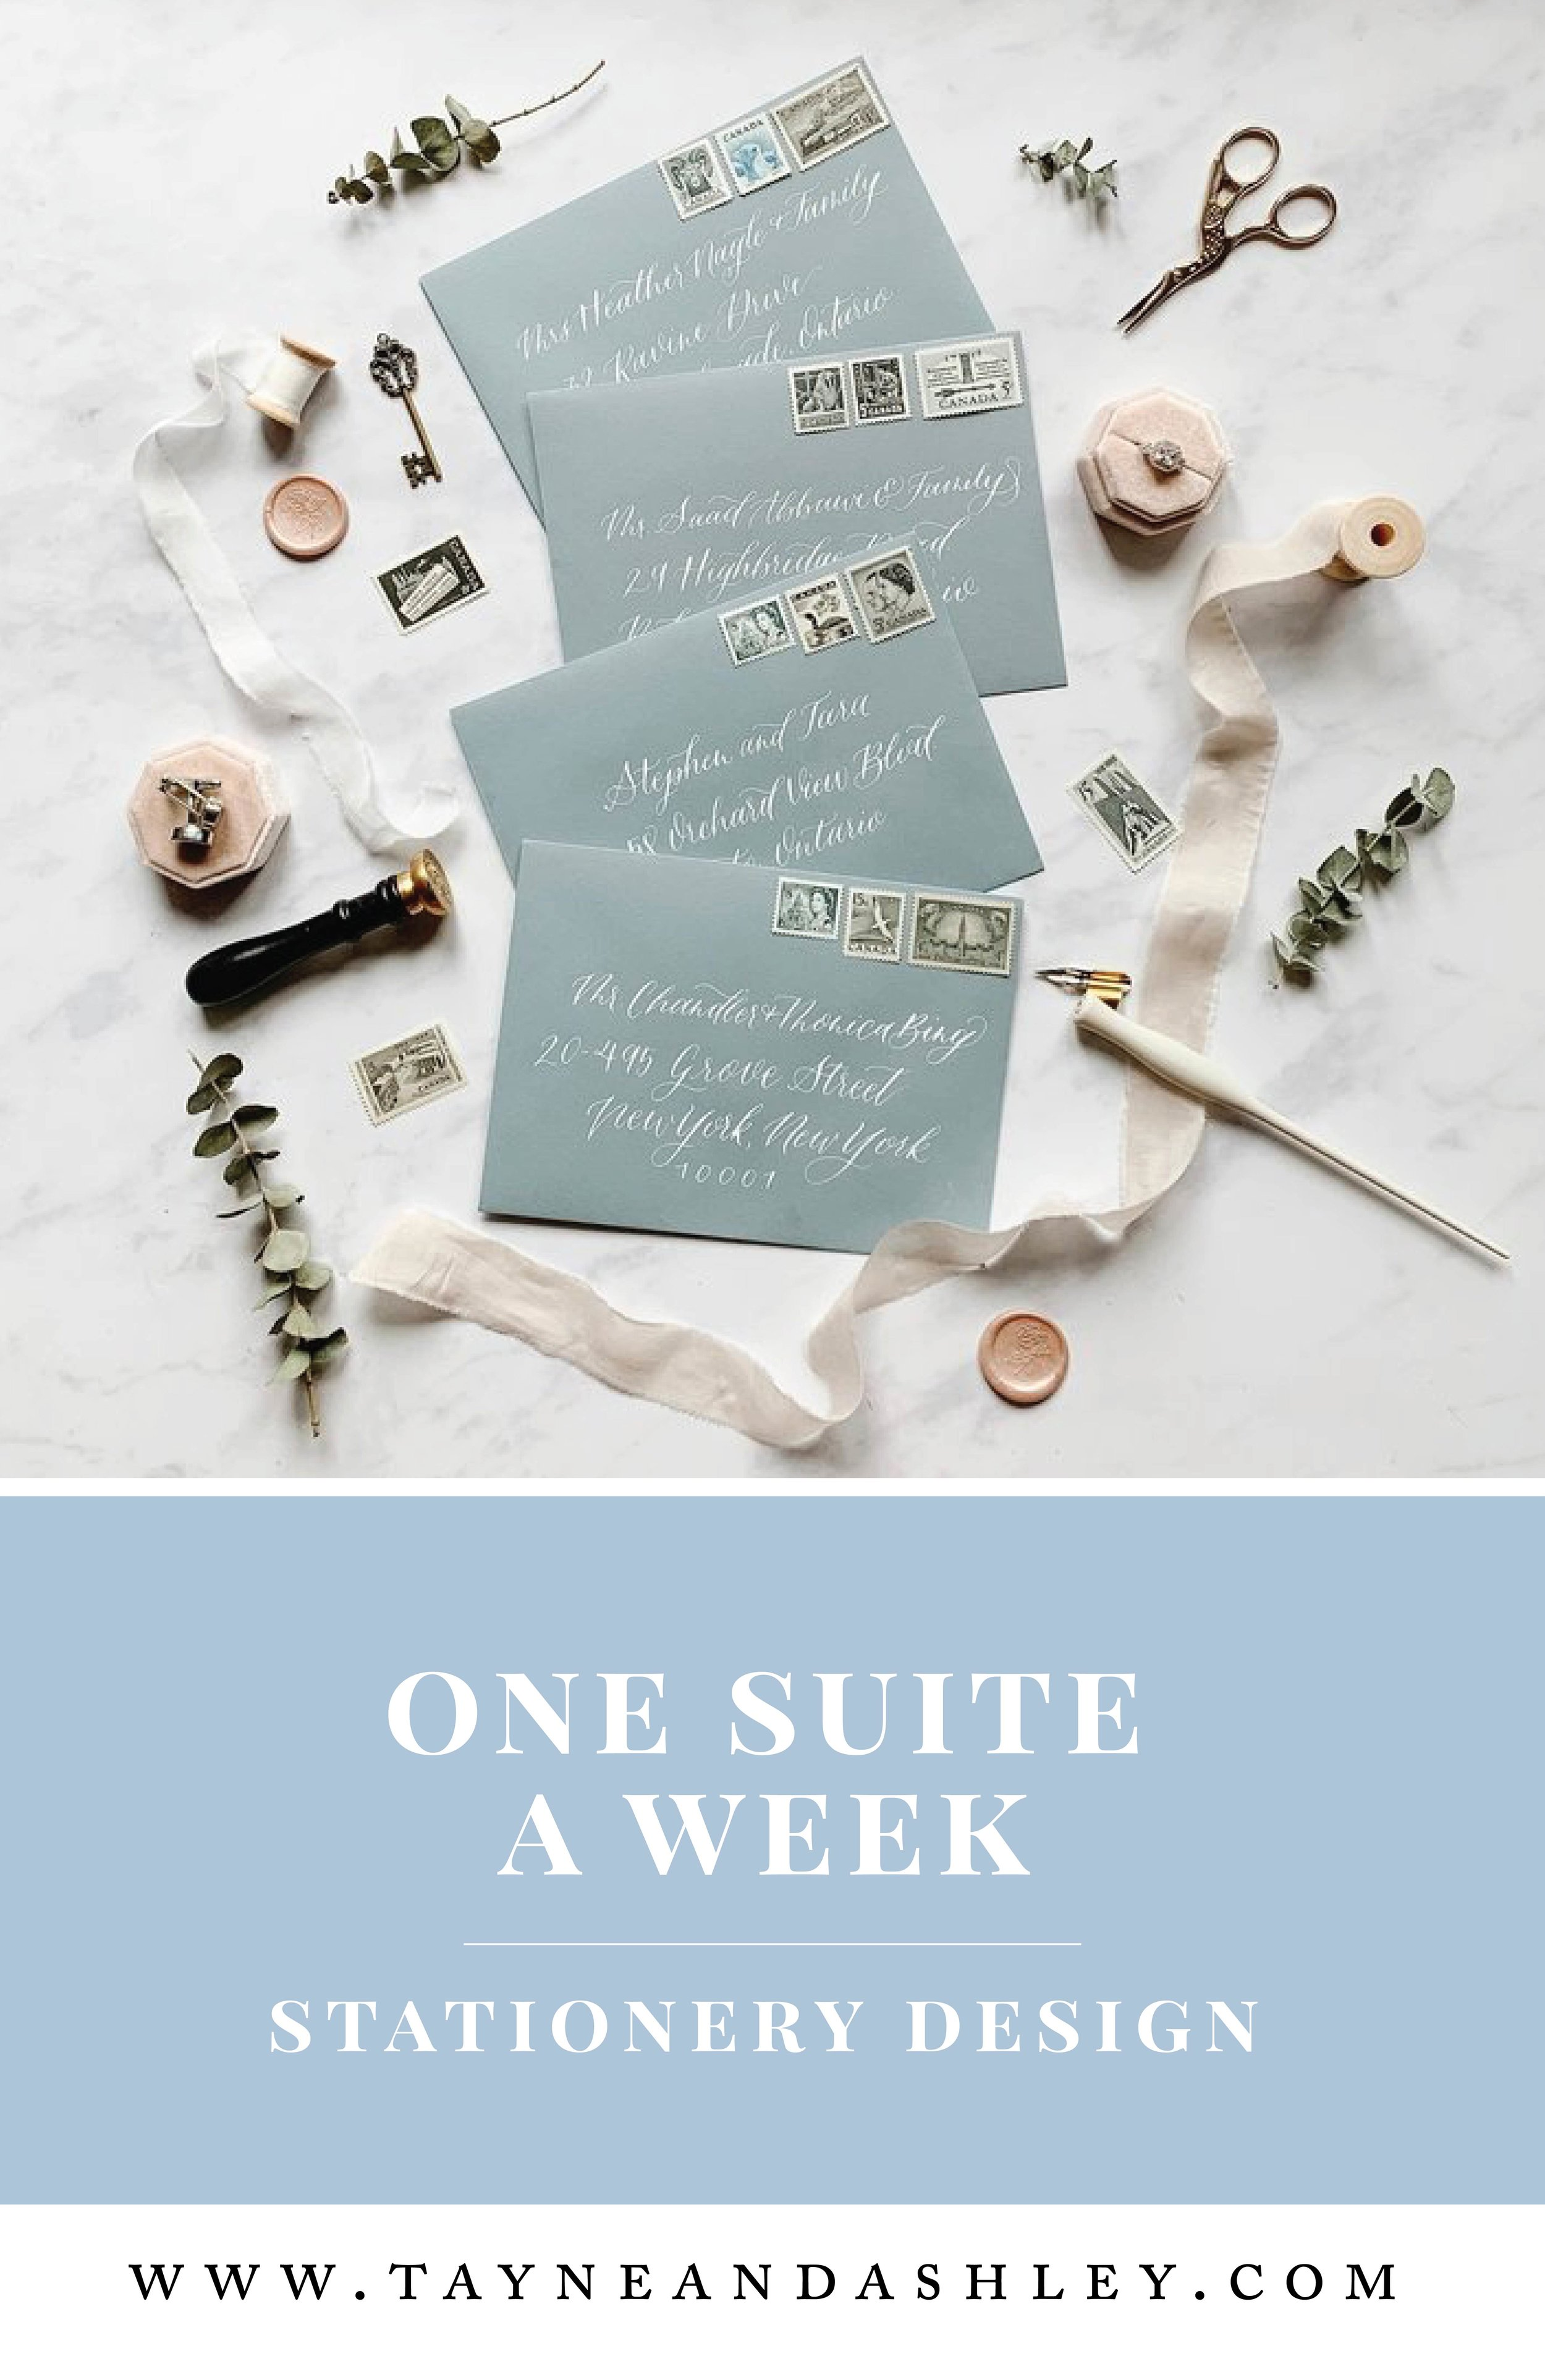 one-suite-a-week - tayne-and-ashley-calligraphy-wedding-invitations-pinterest-01-01.jpg